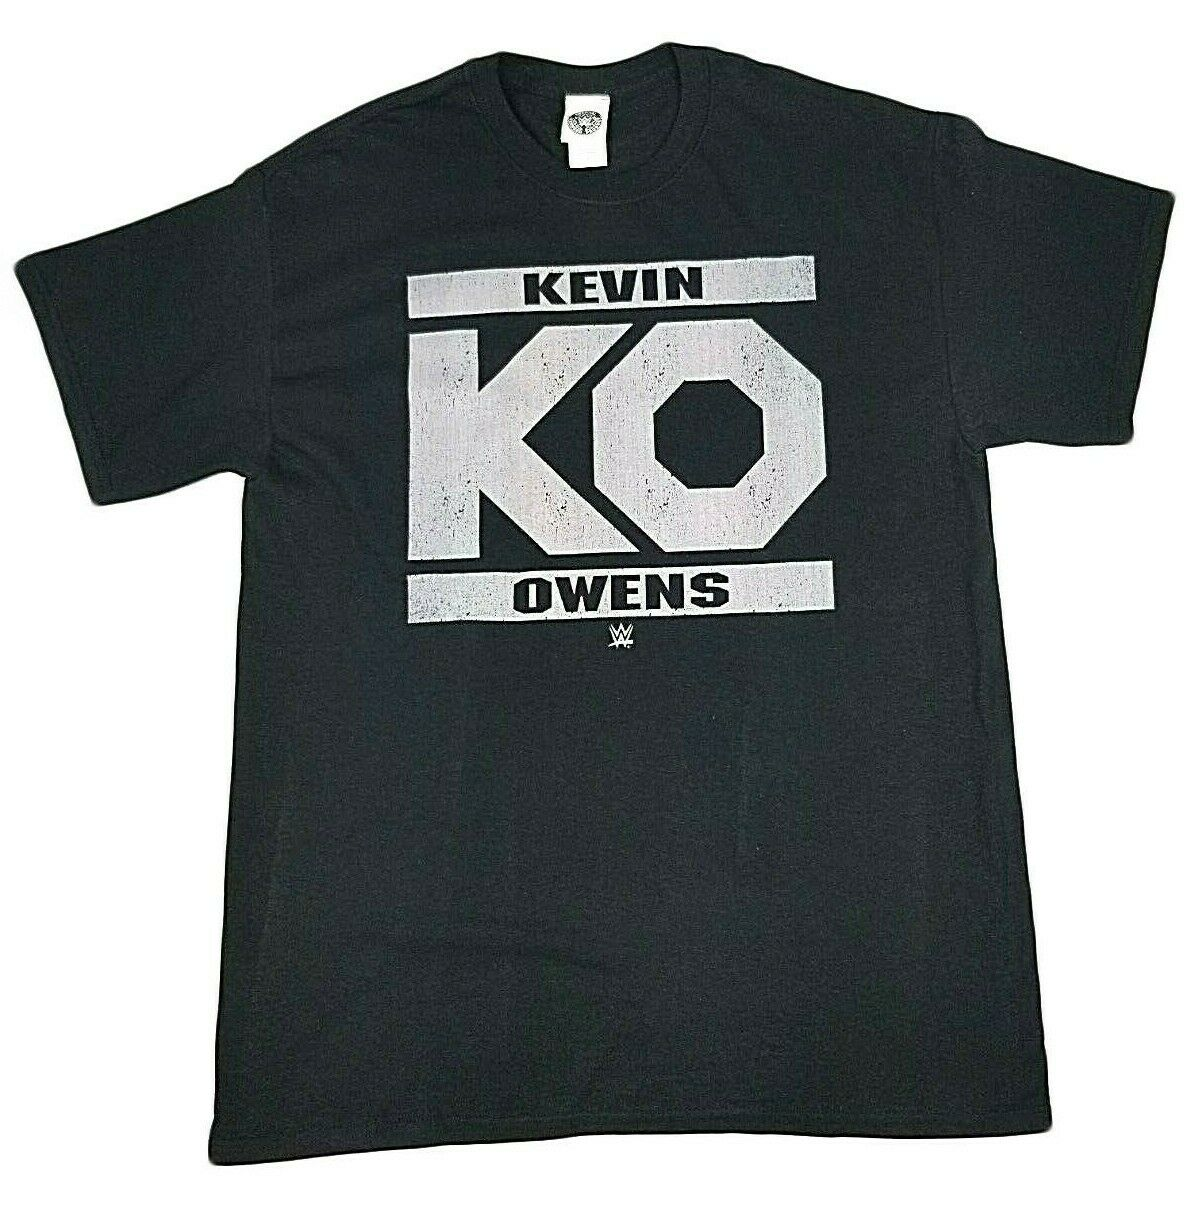 WWE KEVIN OWENS KO T-SHIRT BLACK MENS RETRO WRESTLER TEE BRAND NEW